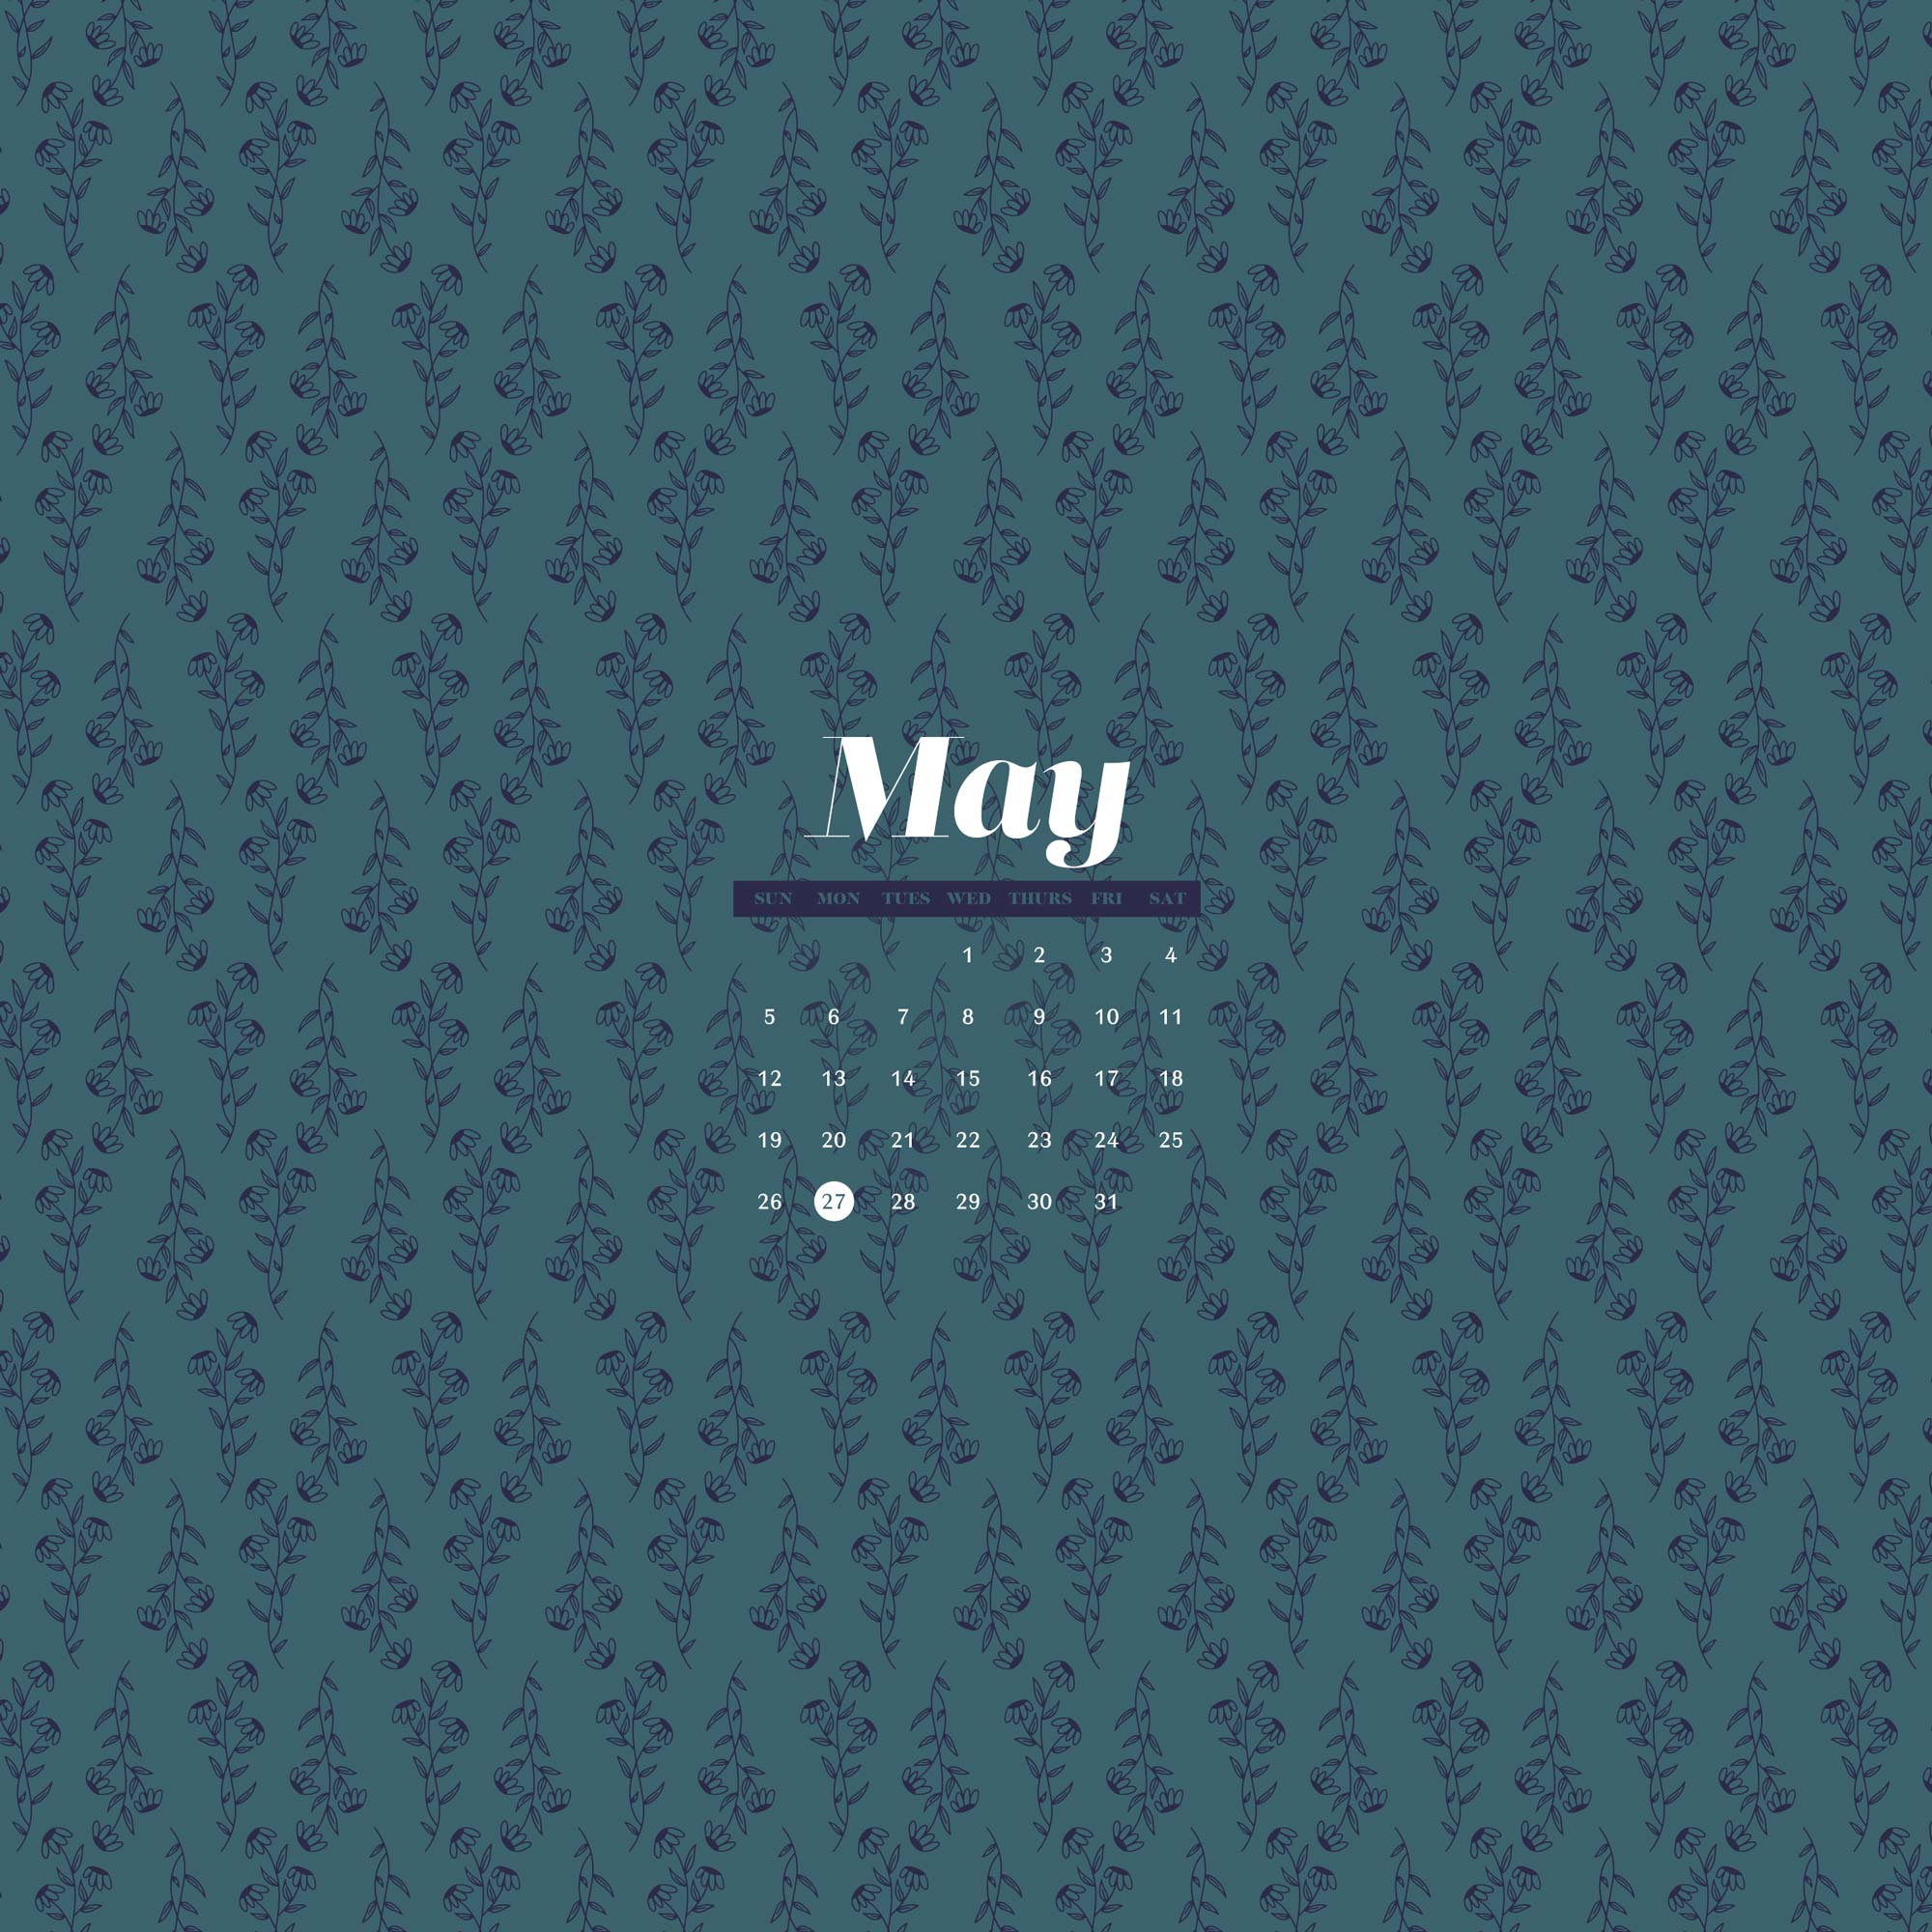 Free Wallpaper for May 2019 with illustrated floral pattern